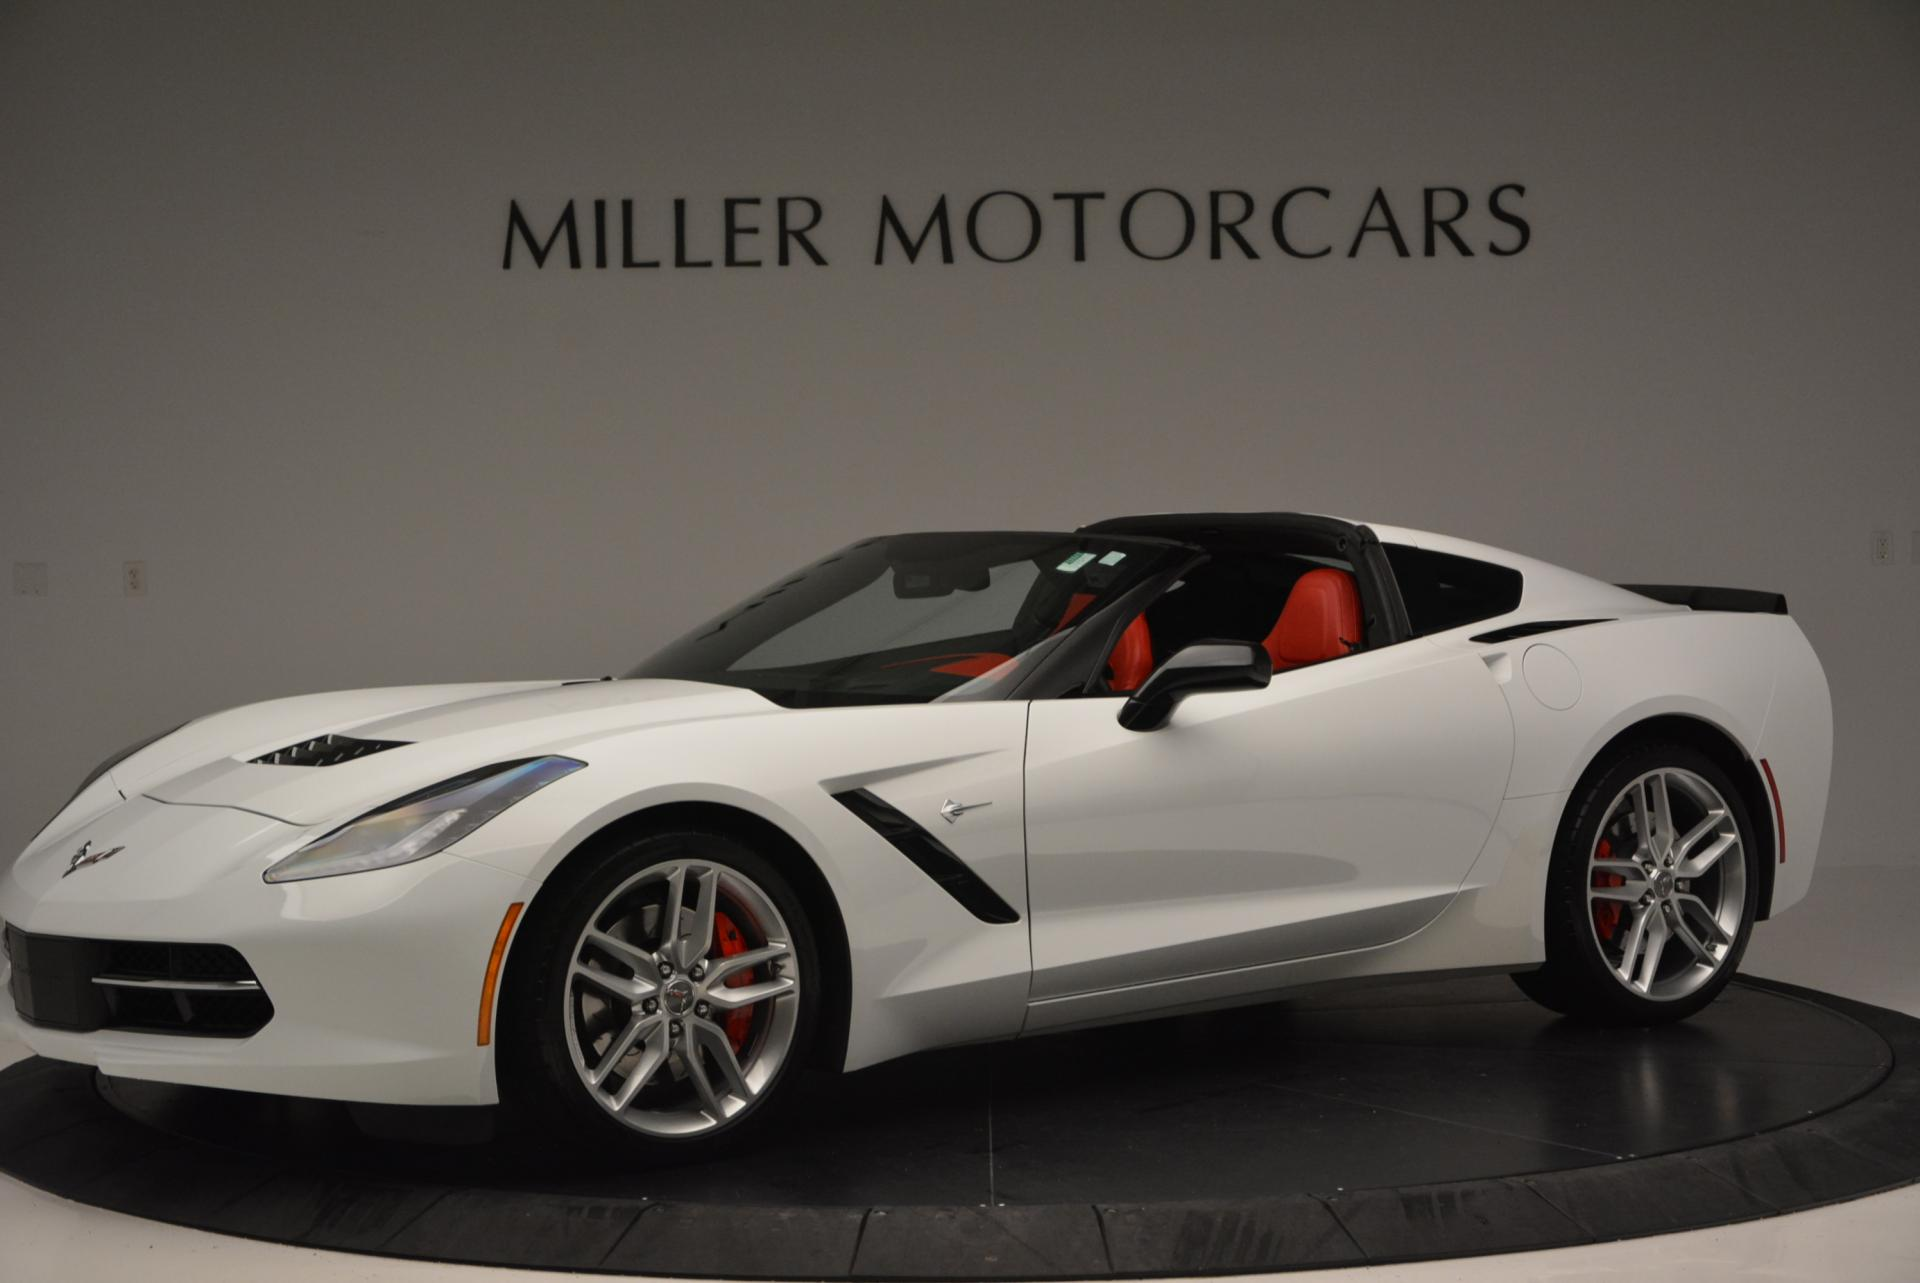 Used 2014 Chevrolet Corvette Stingray Z51 For Sale In Greenwich, CT. Alfa Romeo of Greenwich, 7089 529_p3